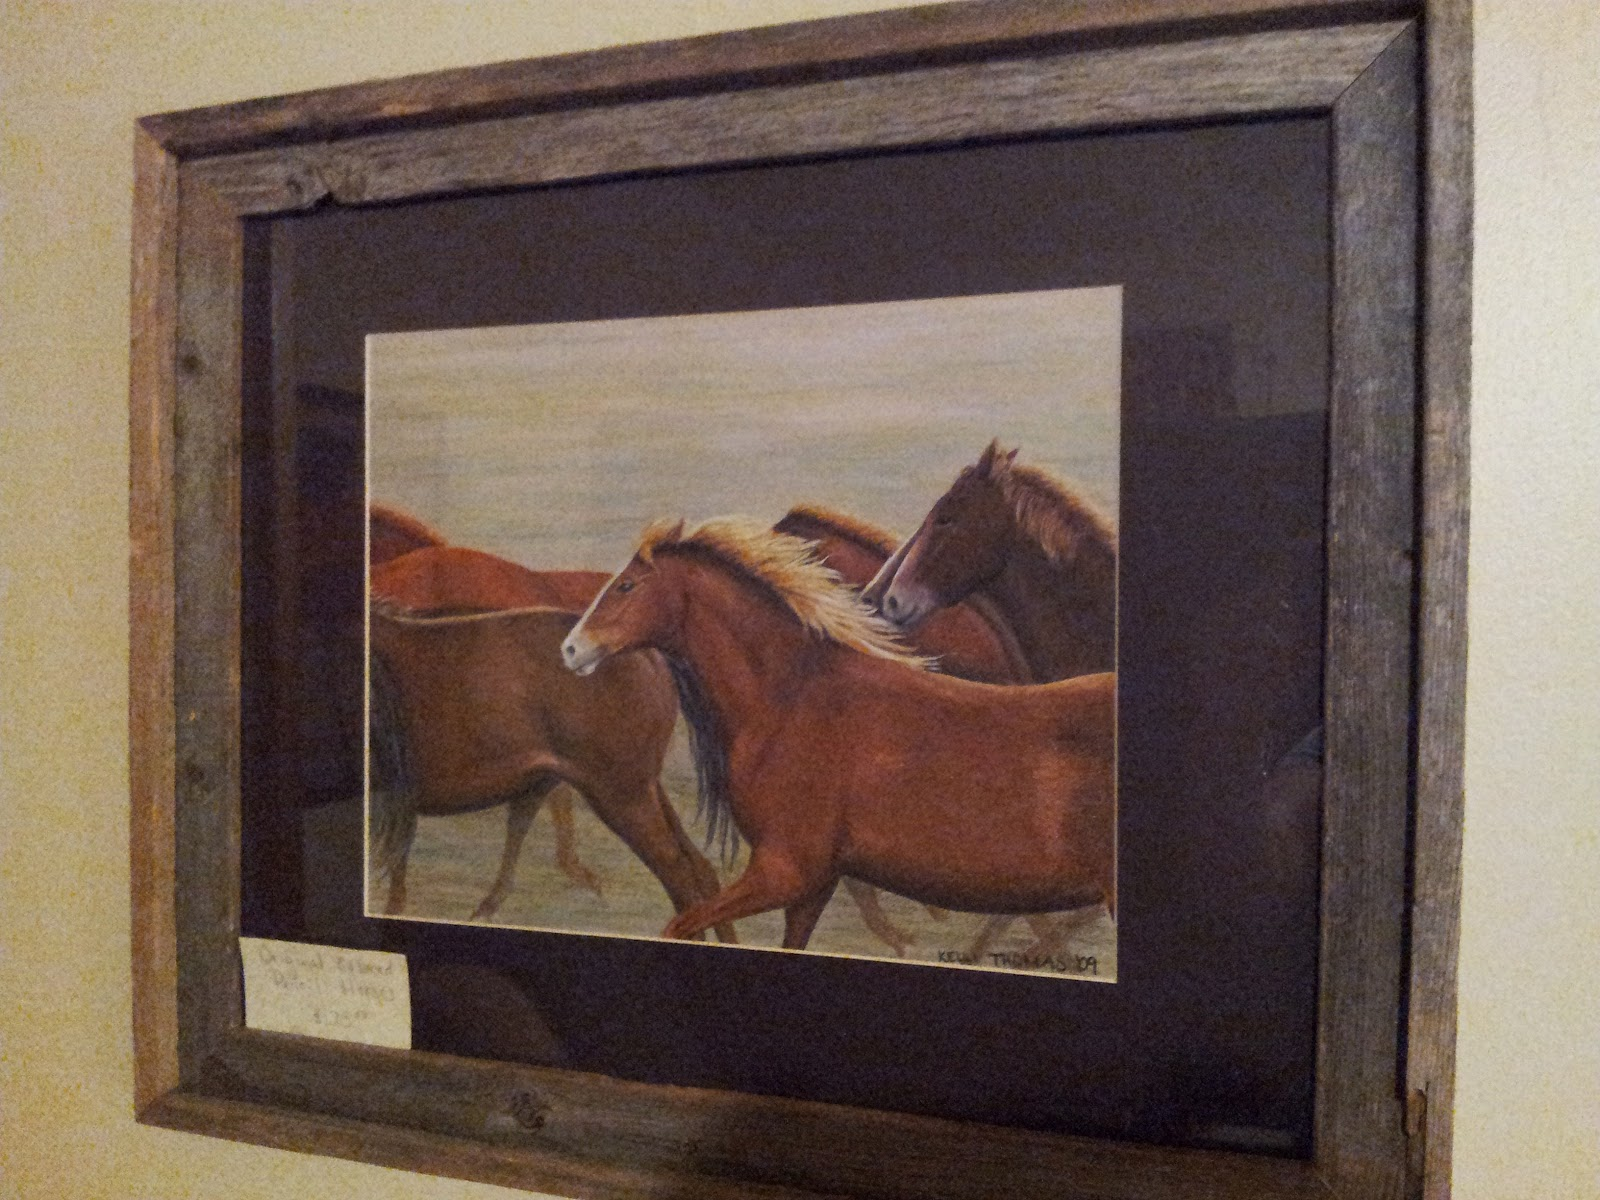 Unique Horse Pictures Framed Images - Picture Frame Ideas ...